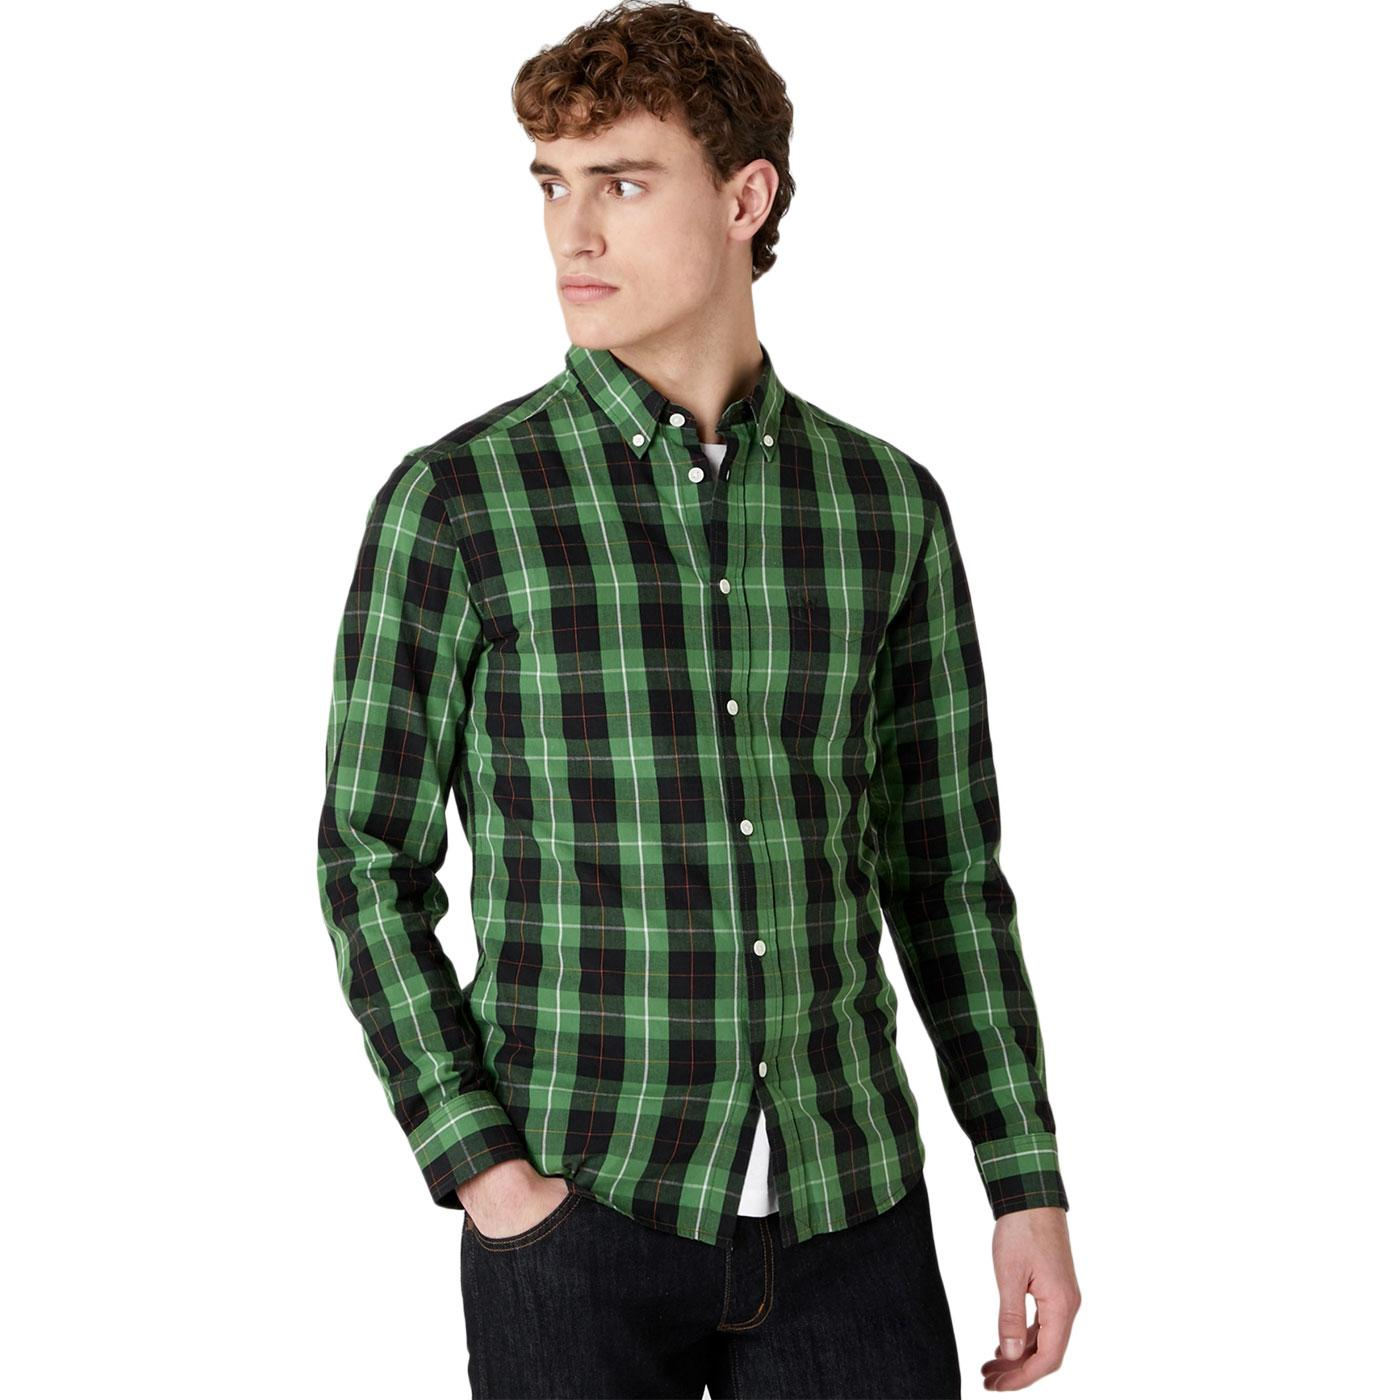 WRANGLER Retro Mod Button Down Check Shirt (Green)